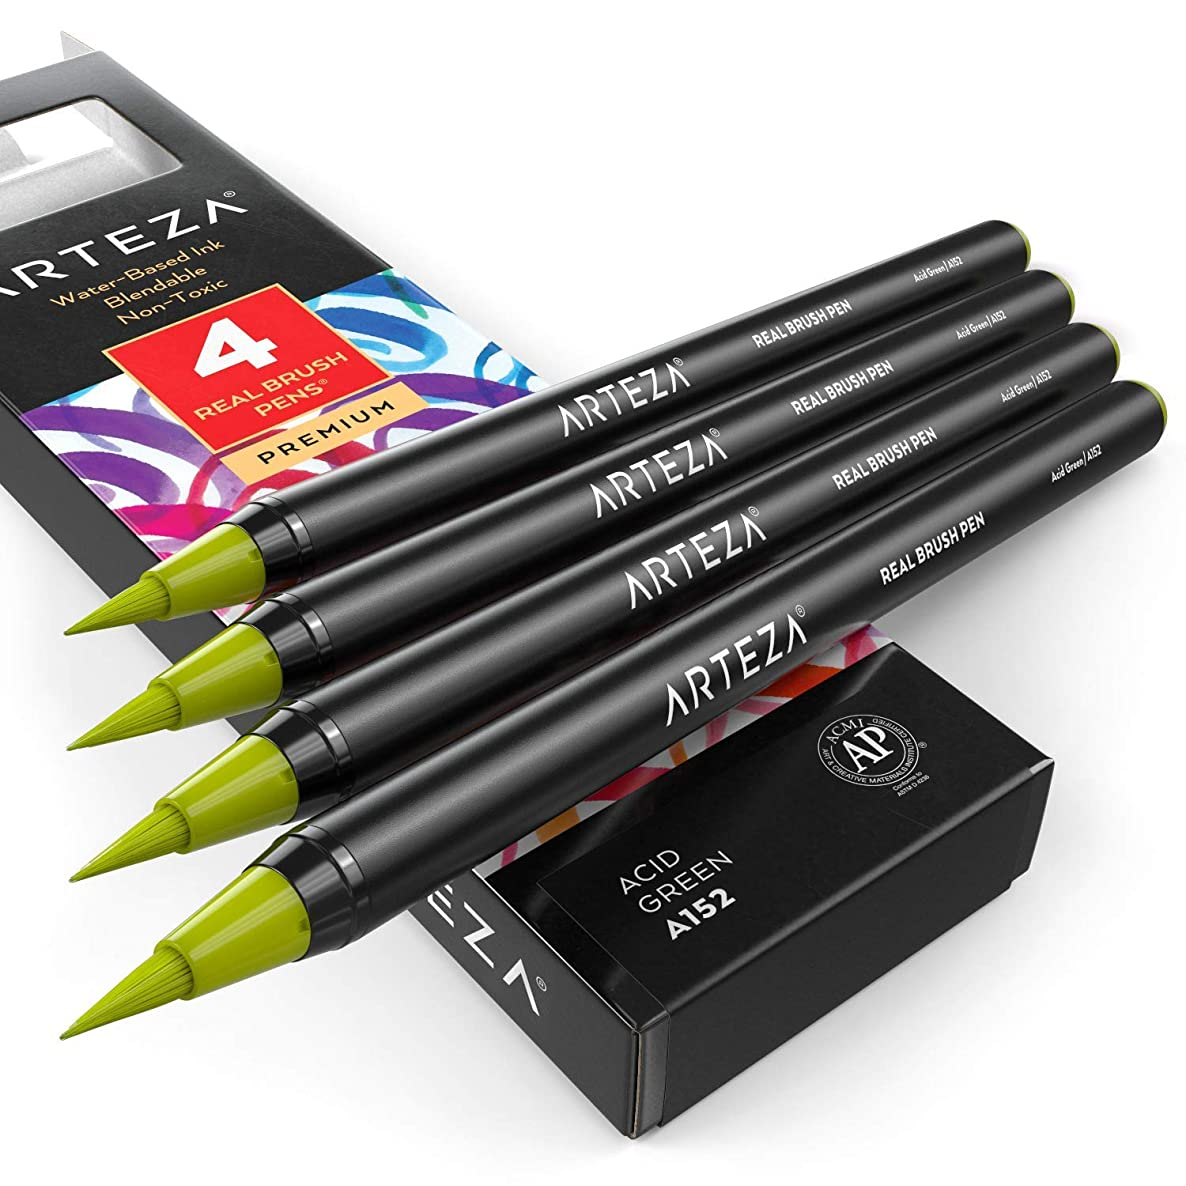 ARTEZA Real Brush Pens (A152 Acid Green) Pack of 4, for Watercolor Painting with Flexible Nylon Brush Tips, Paint Markers for Coloring, Calligraphy and Drawing